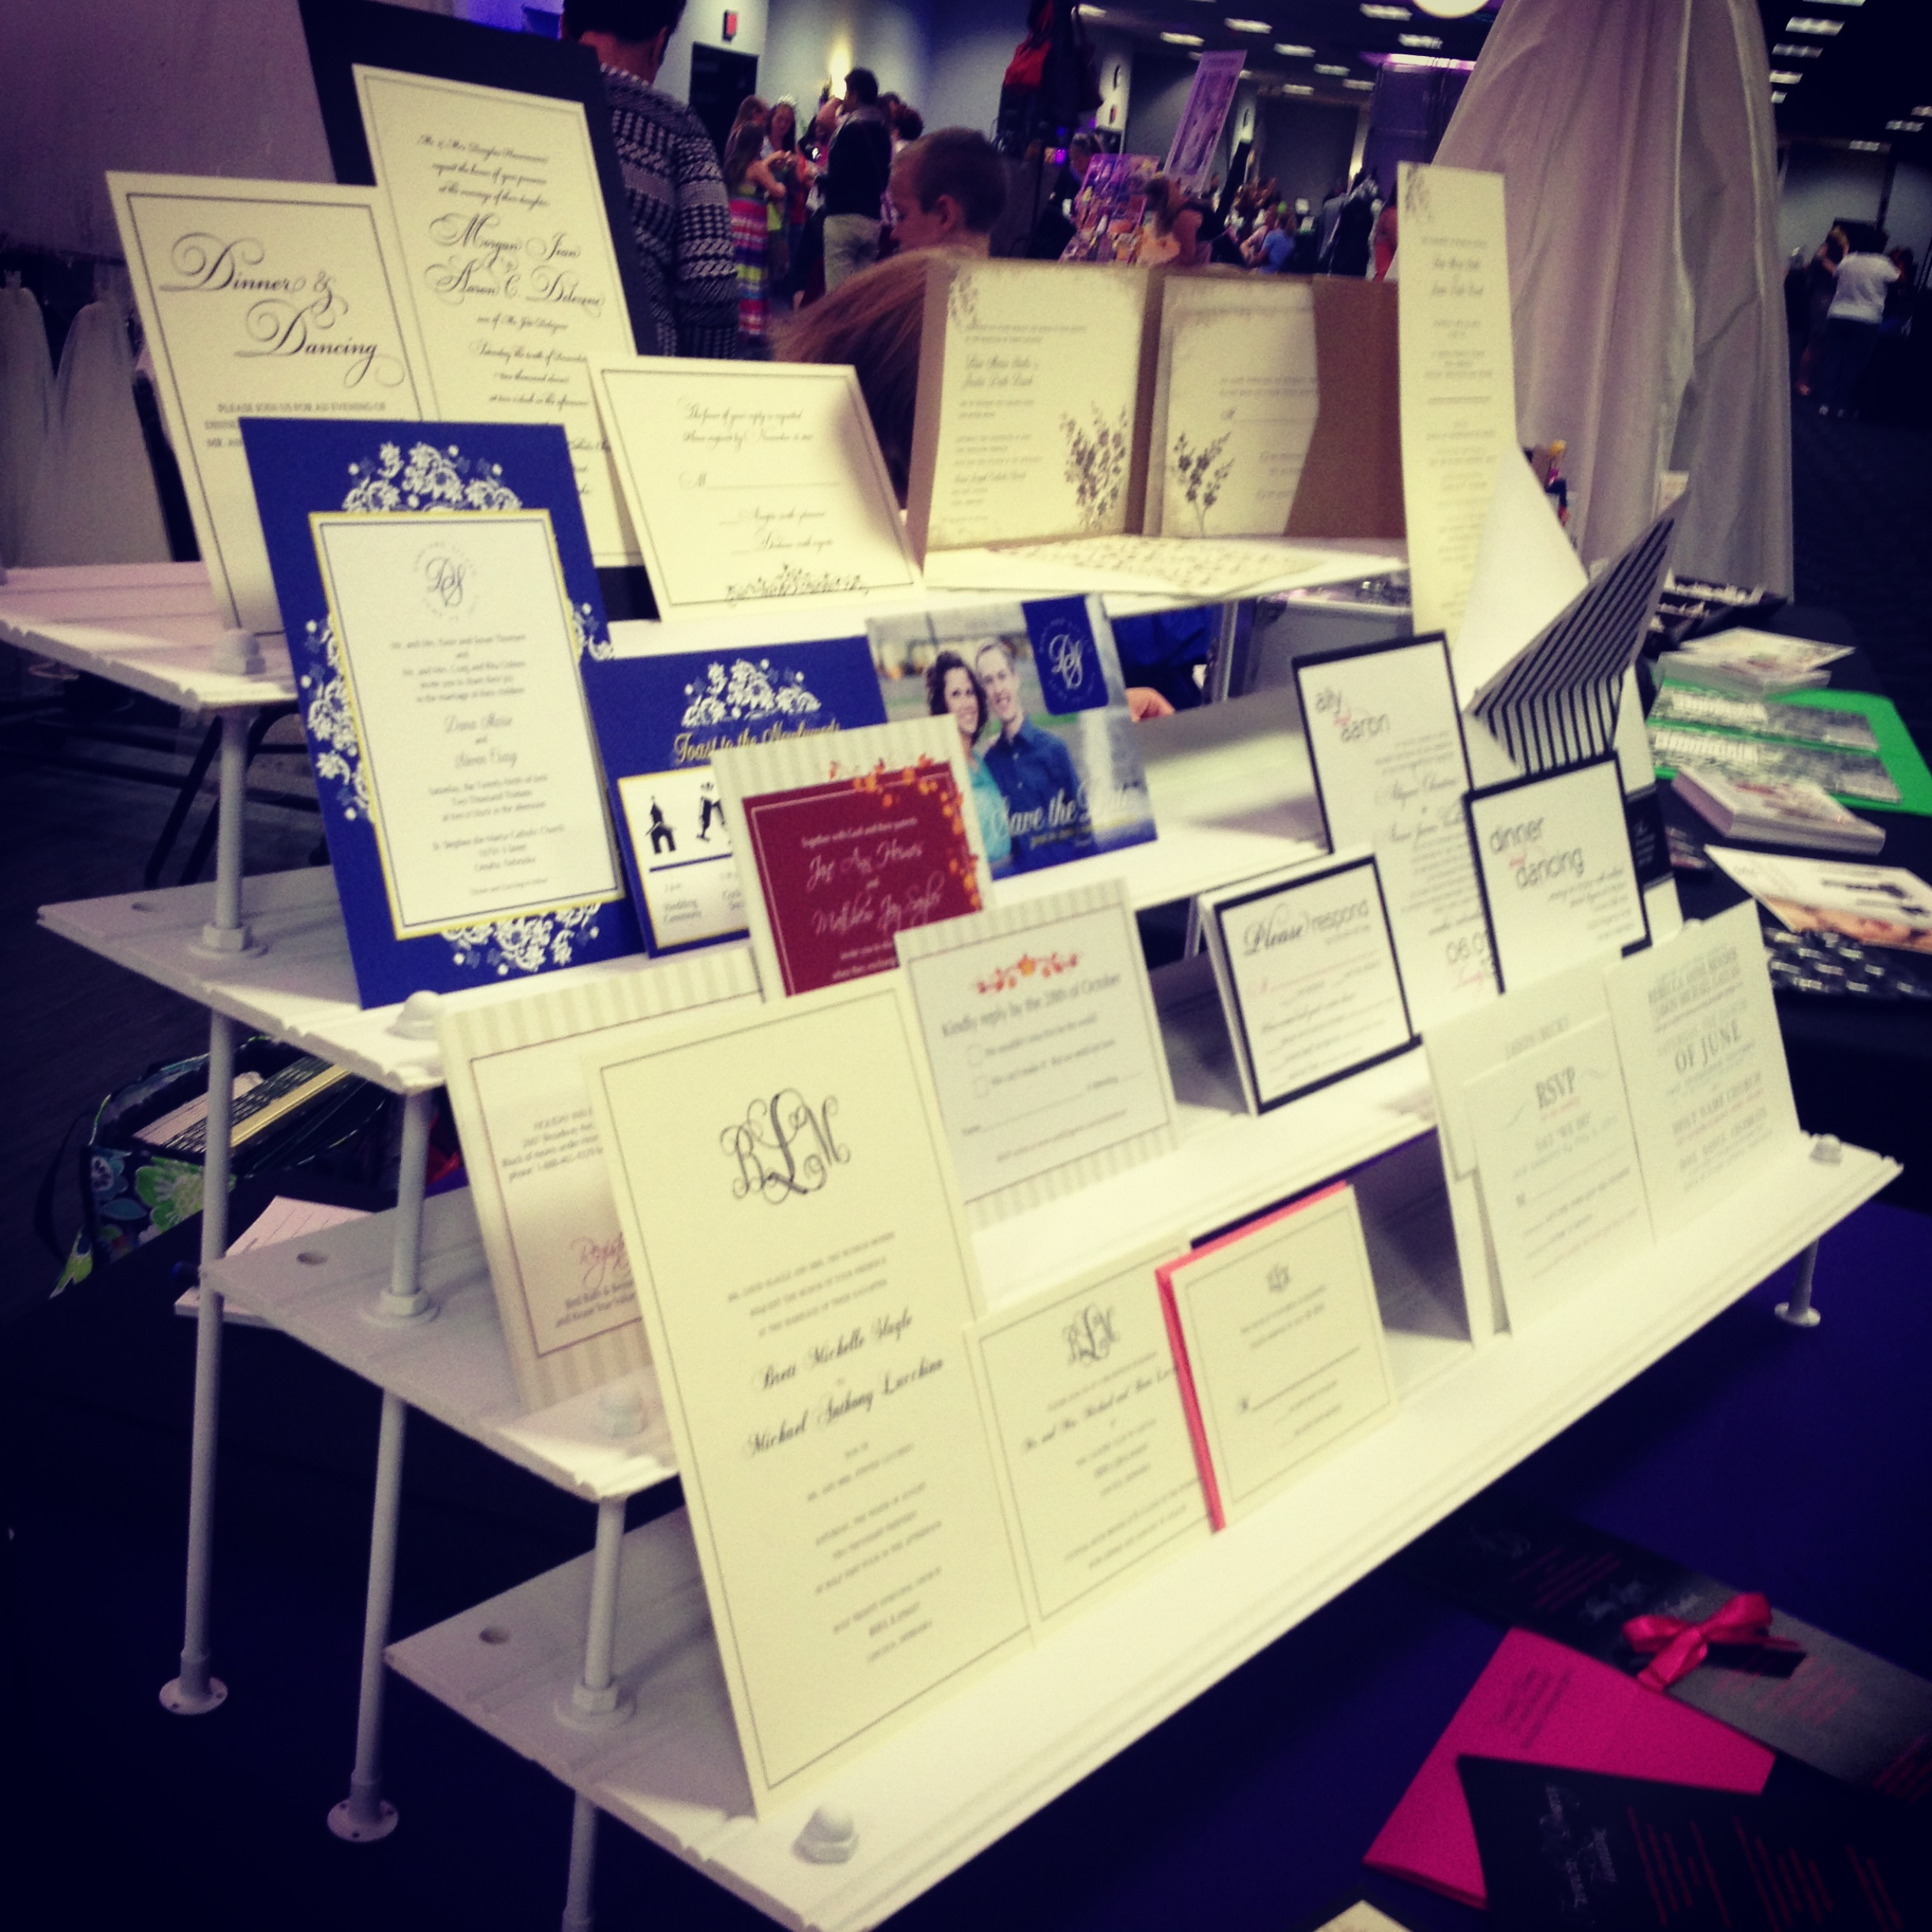 Bridal Extravaganza Southeast Texas, Bridal Extravaganza Beaumont TX, Bridal Extravaganza SETX, Bridal Extravaganza Golden Triangle TX, Bridal Extravaganza Mid County, Bridal Extravaganza Port Arthur, Bridal Extravaganza Groves TX, Bridal Extravaganza Port Neches, Bridal Extravaganza Nederland TX, Bridal Extravaganza Bridge City TX, Bridal Extravaganza Orange TX,